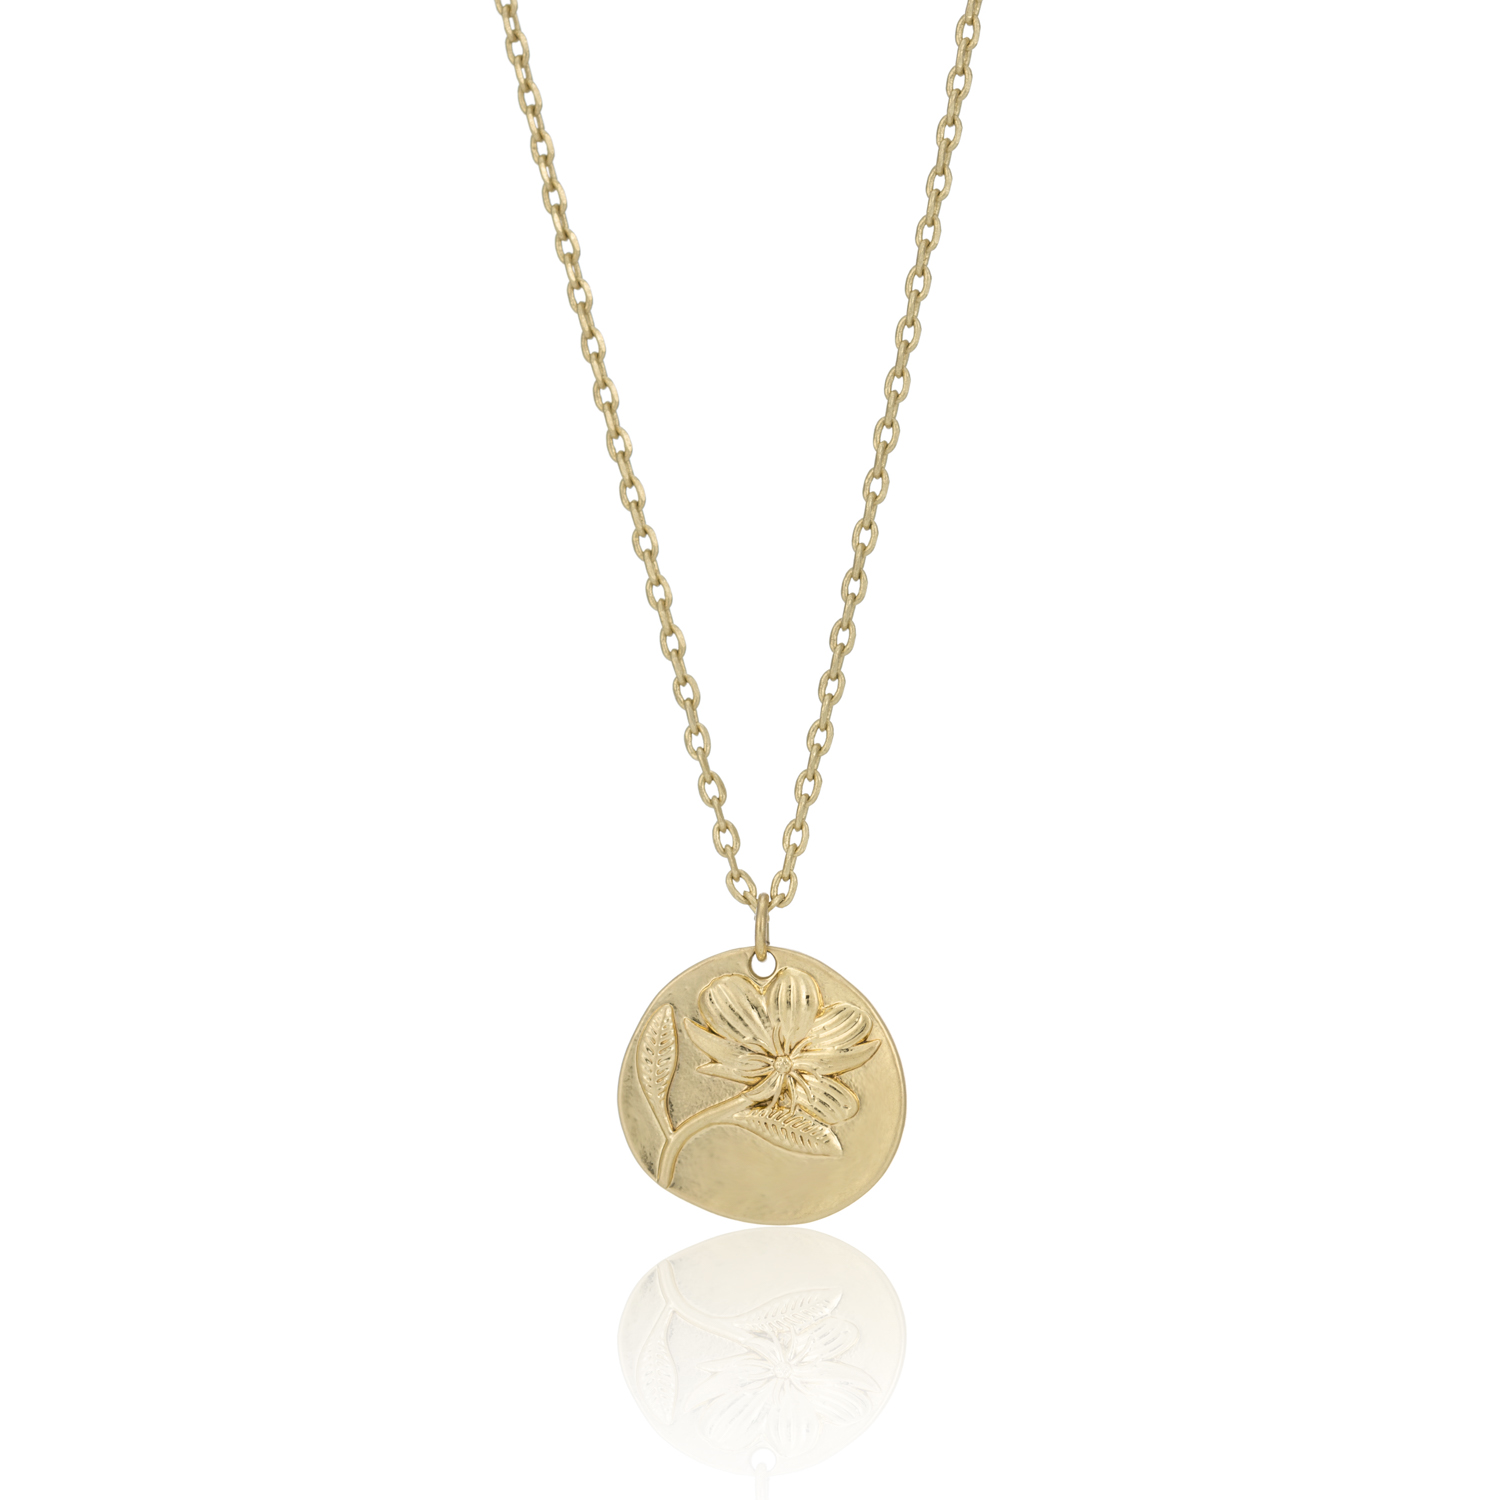 GOLD Enchanted Forest Floral Necklace